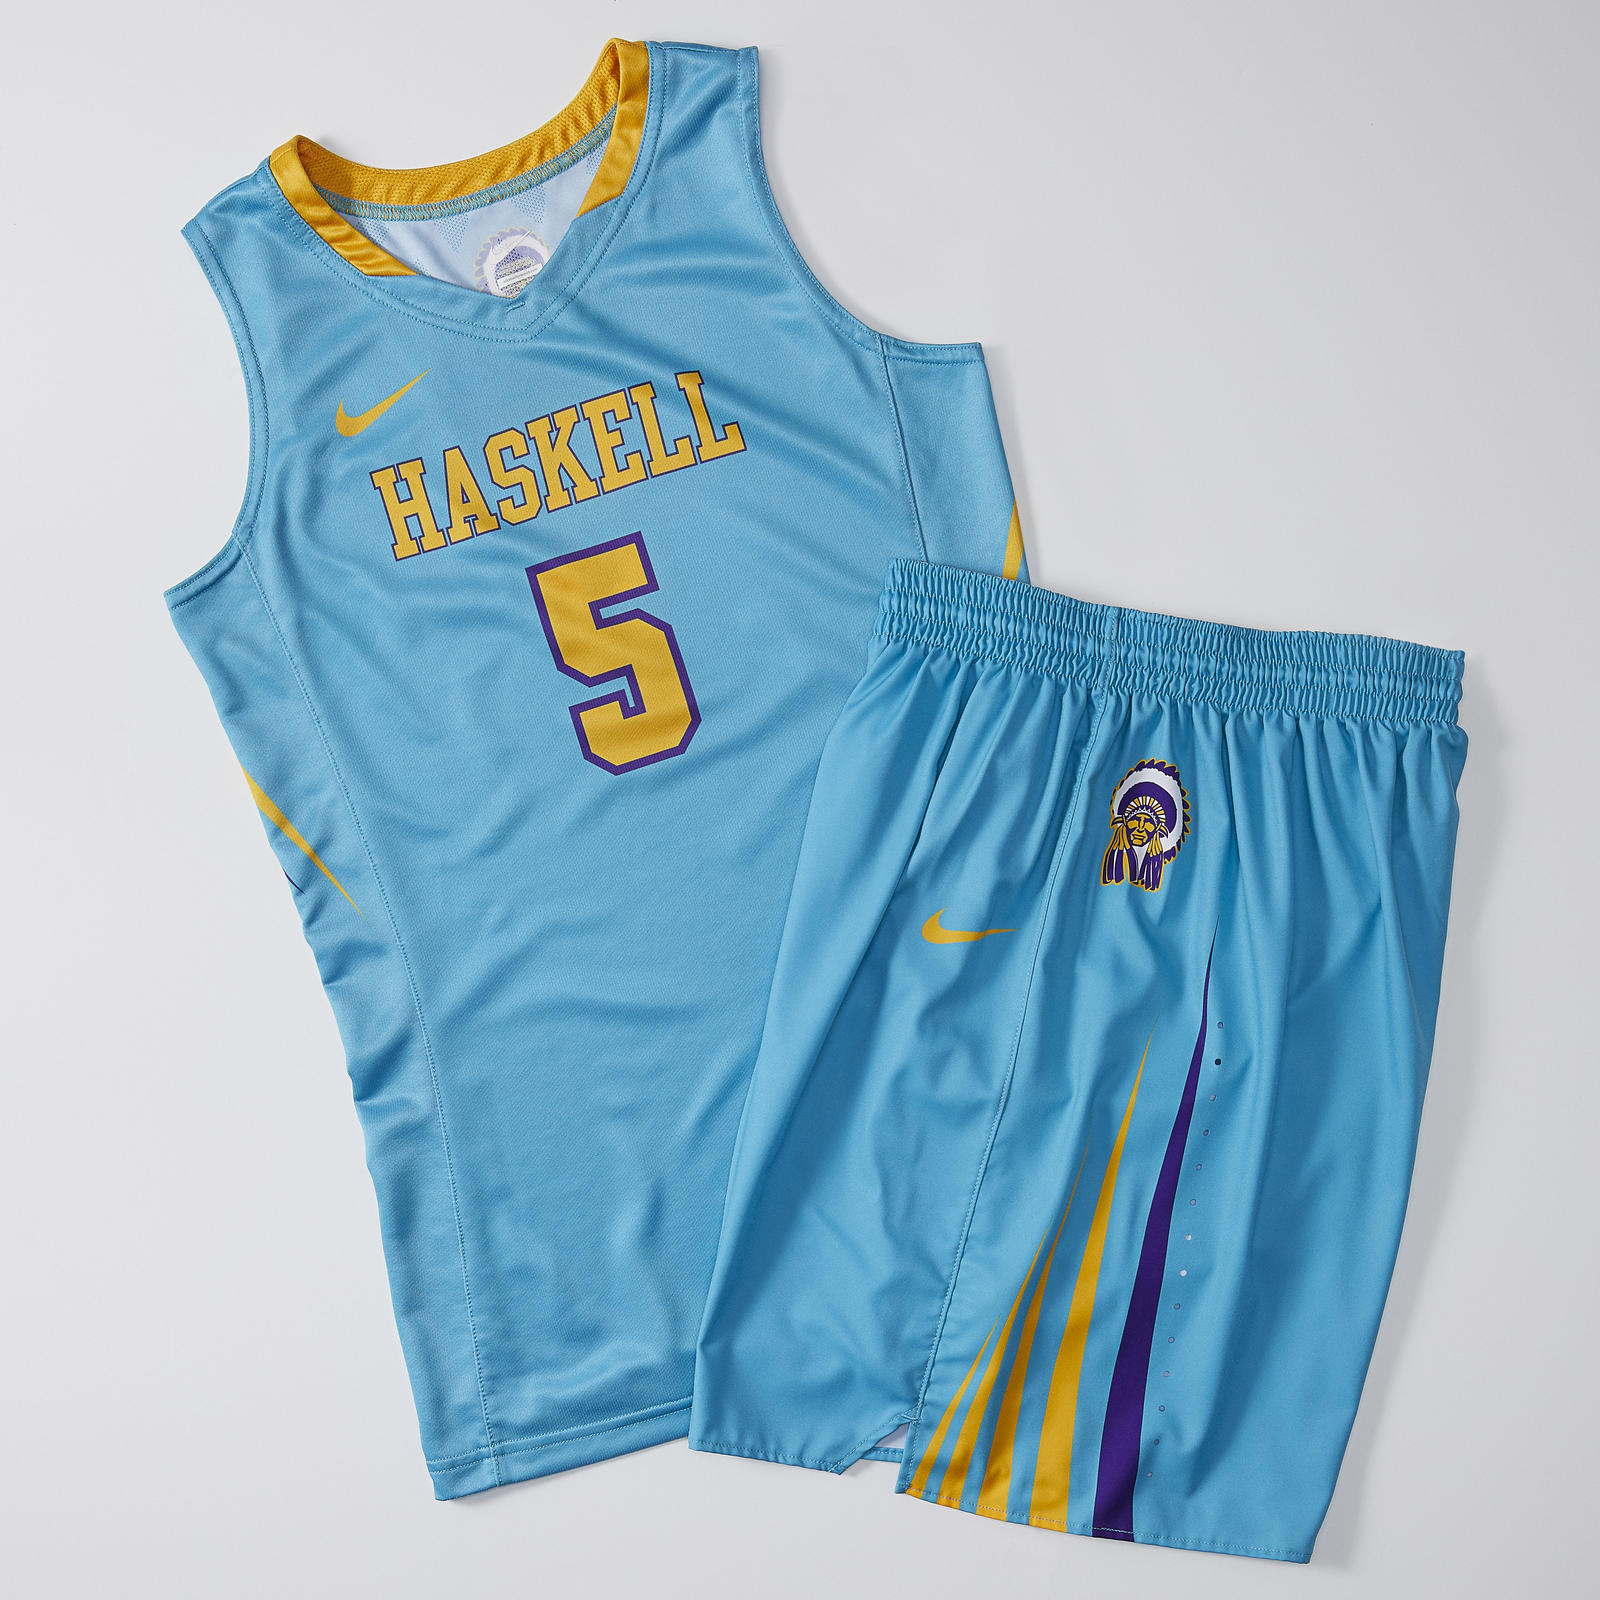 Best College Basketball Uniforms 2019 Nike N7 College Basketball Jerseys 2018 19   Nike News